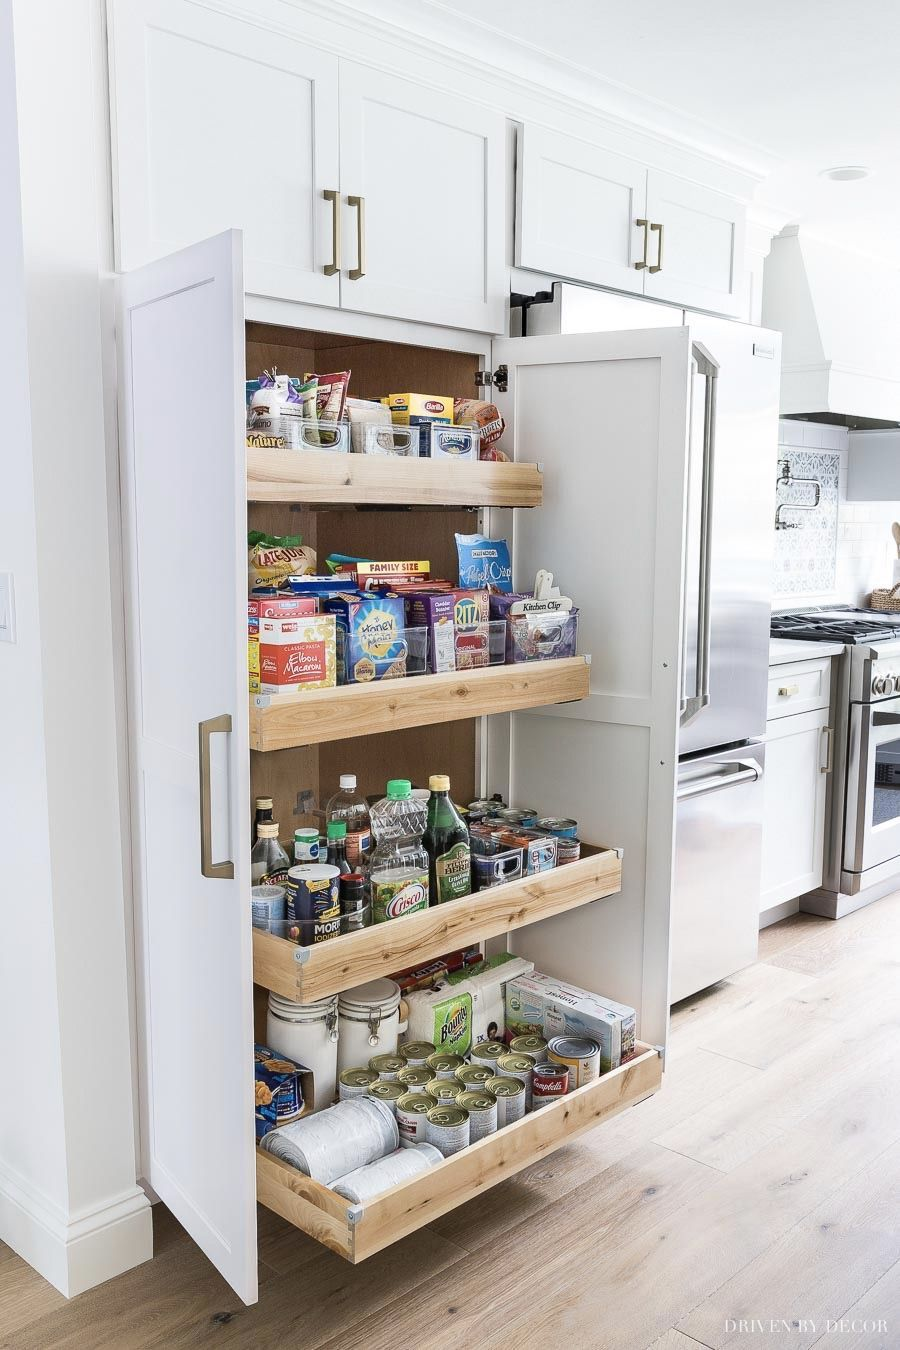 I Need This Pull Out Drawer Pantry In My Kitchen So Organized And Easy To Access E In 2020 Kitchen Cabinets Storage Organizers White Kitchen Remodeling Trendy Kitchen